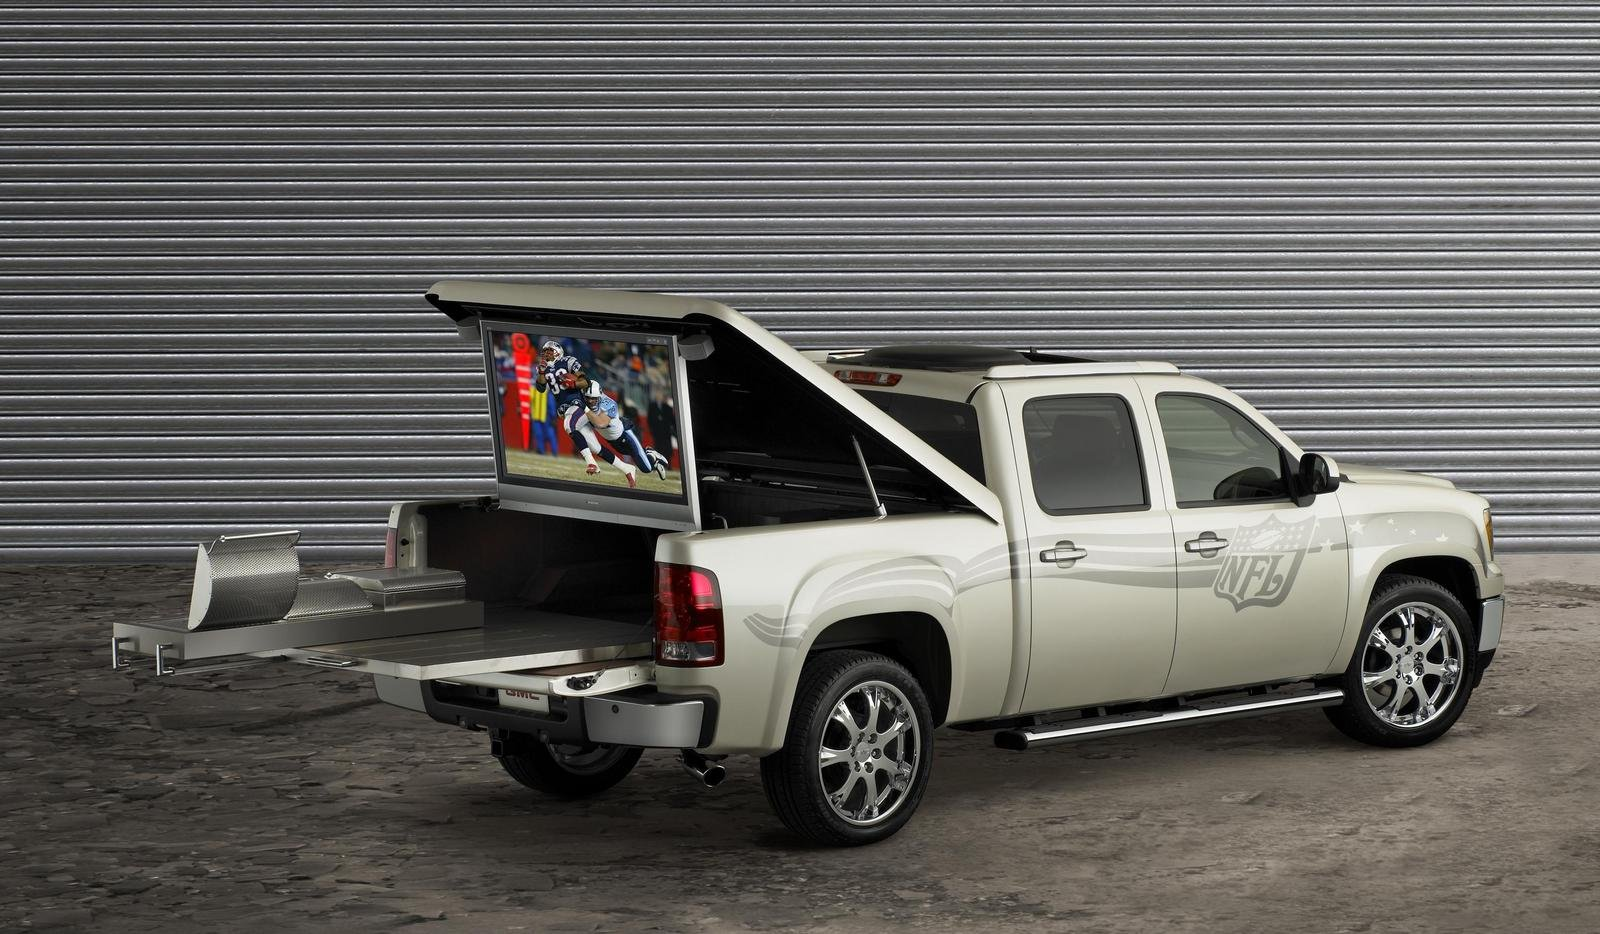 2007 gmc sierra nfl crew cab picture 108938 car review. Black Bedroom Furniture Sets. Home Design Ideas